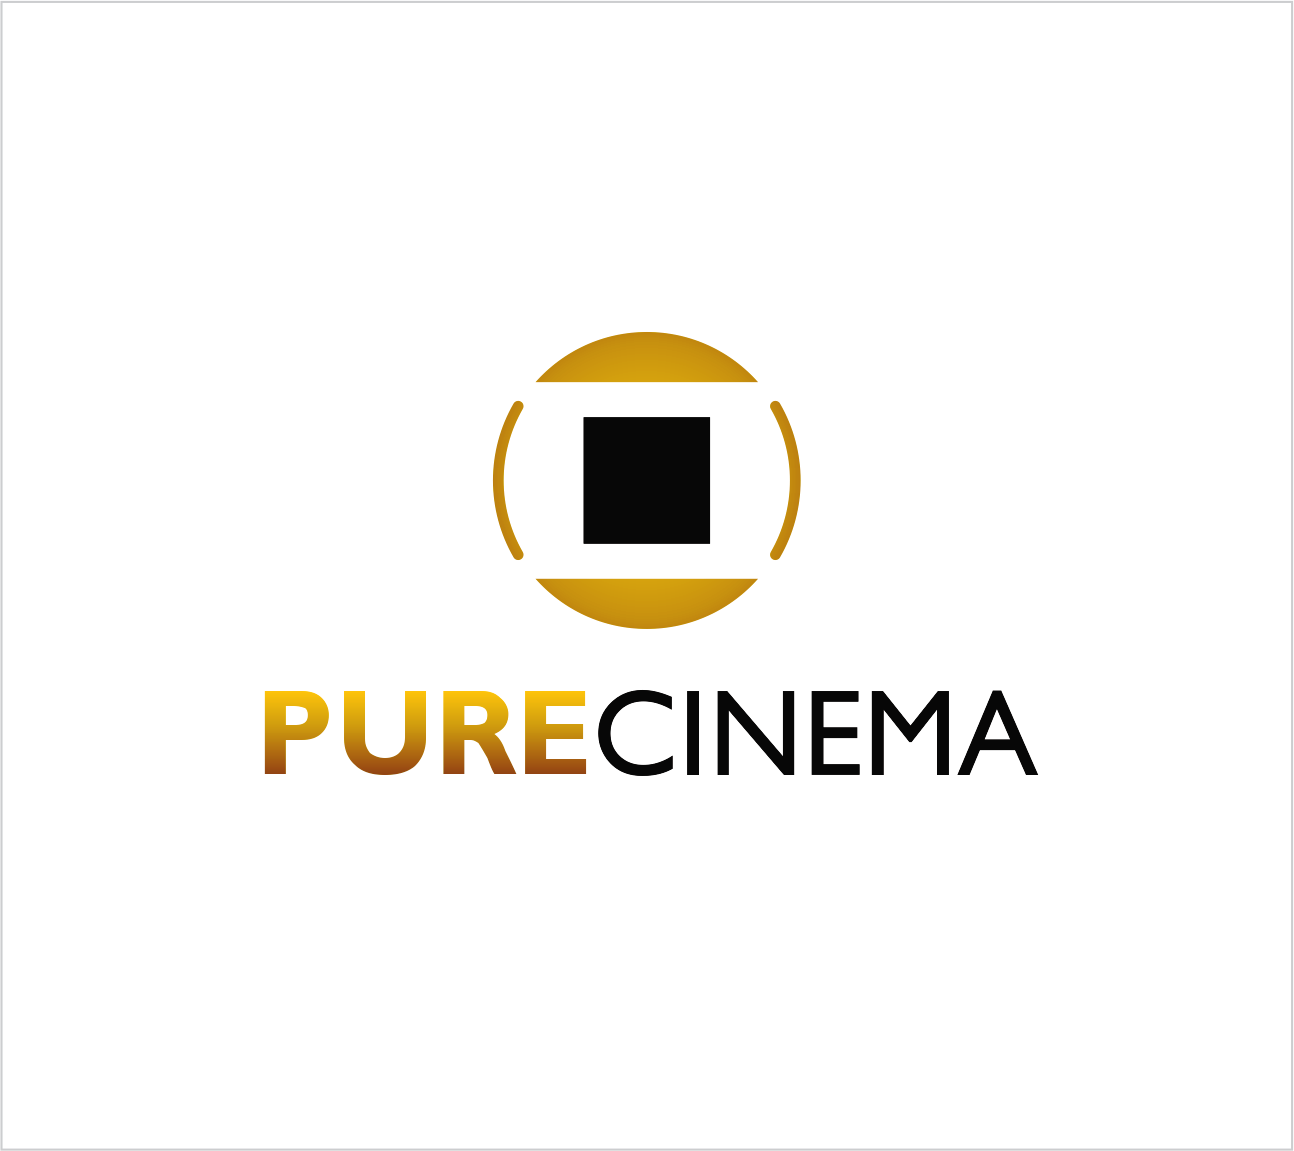 Logo Design by Armada Jamaluddin - Entry No. 32 in the Logo Design Contest Imaginative Logo Design for Pure Cinema.